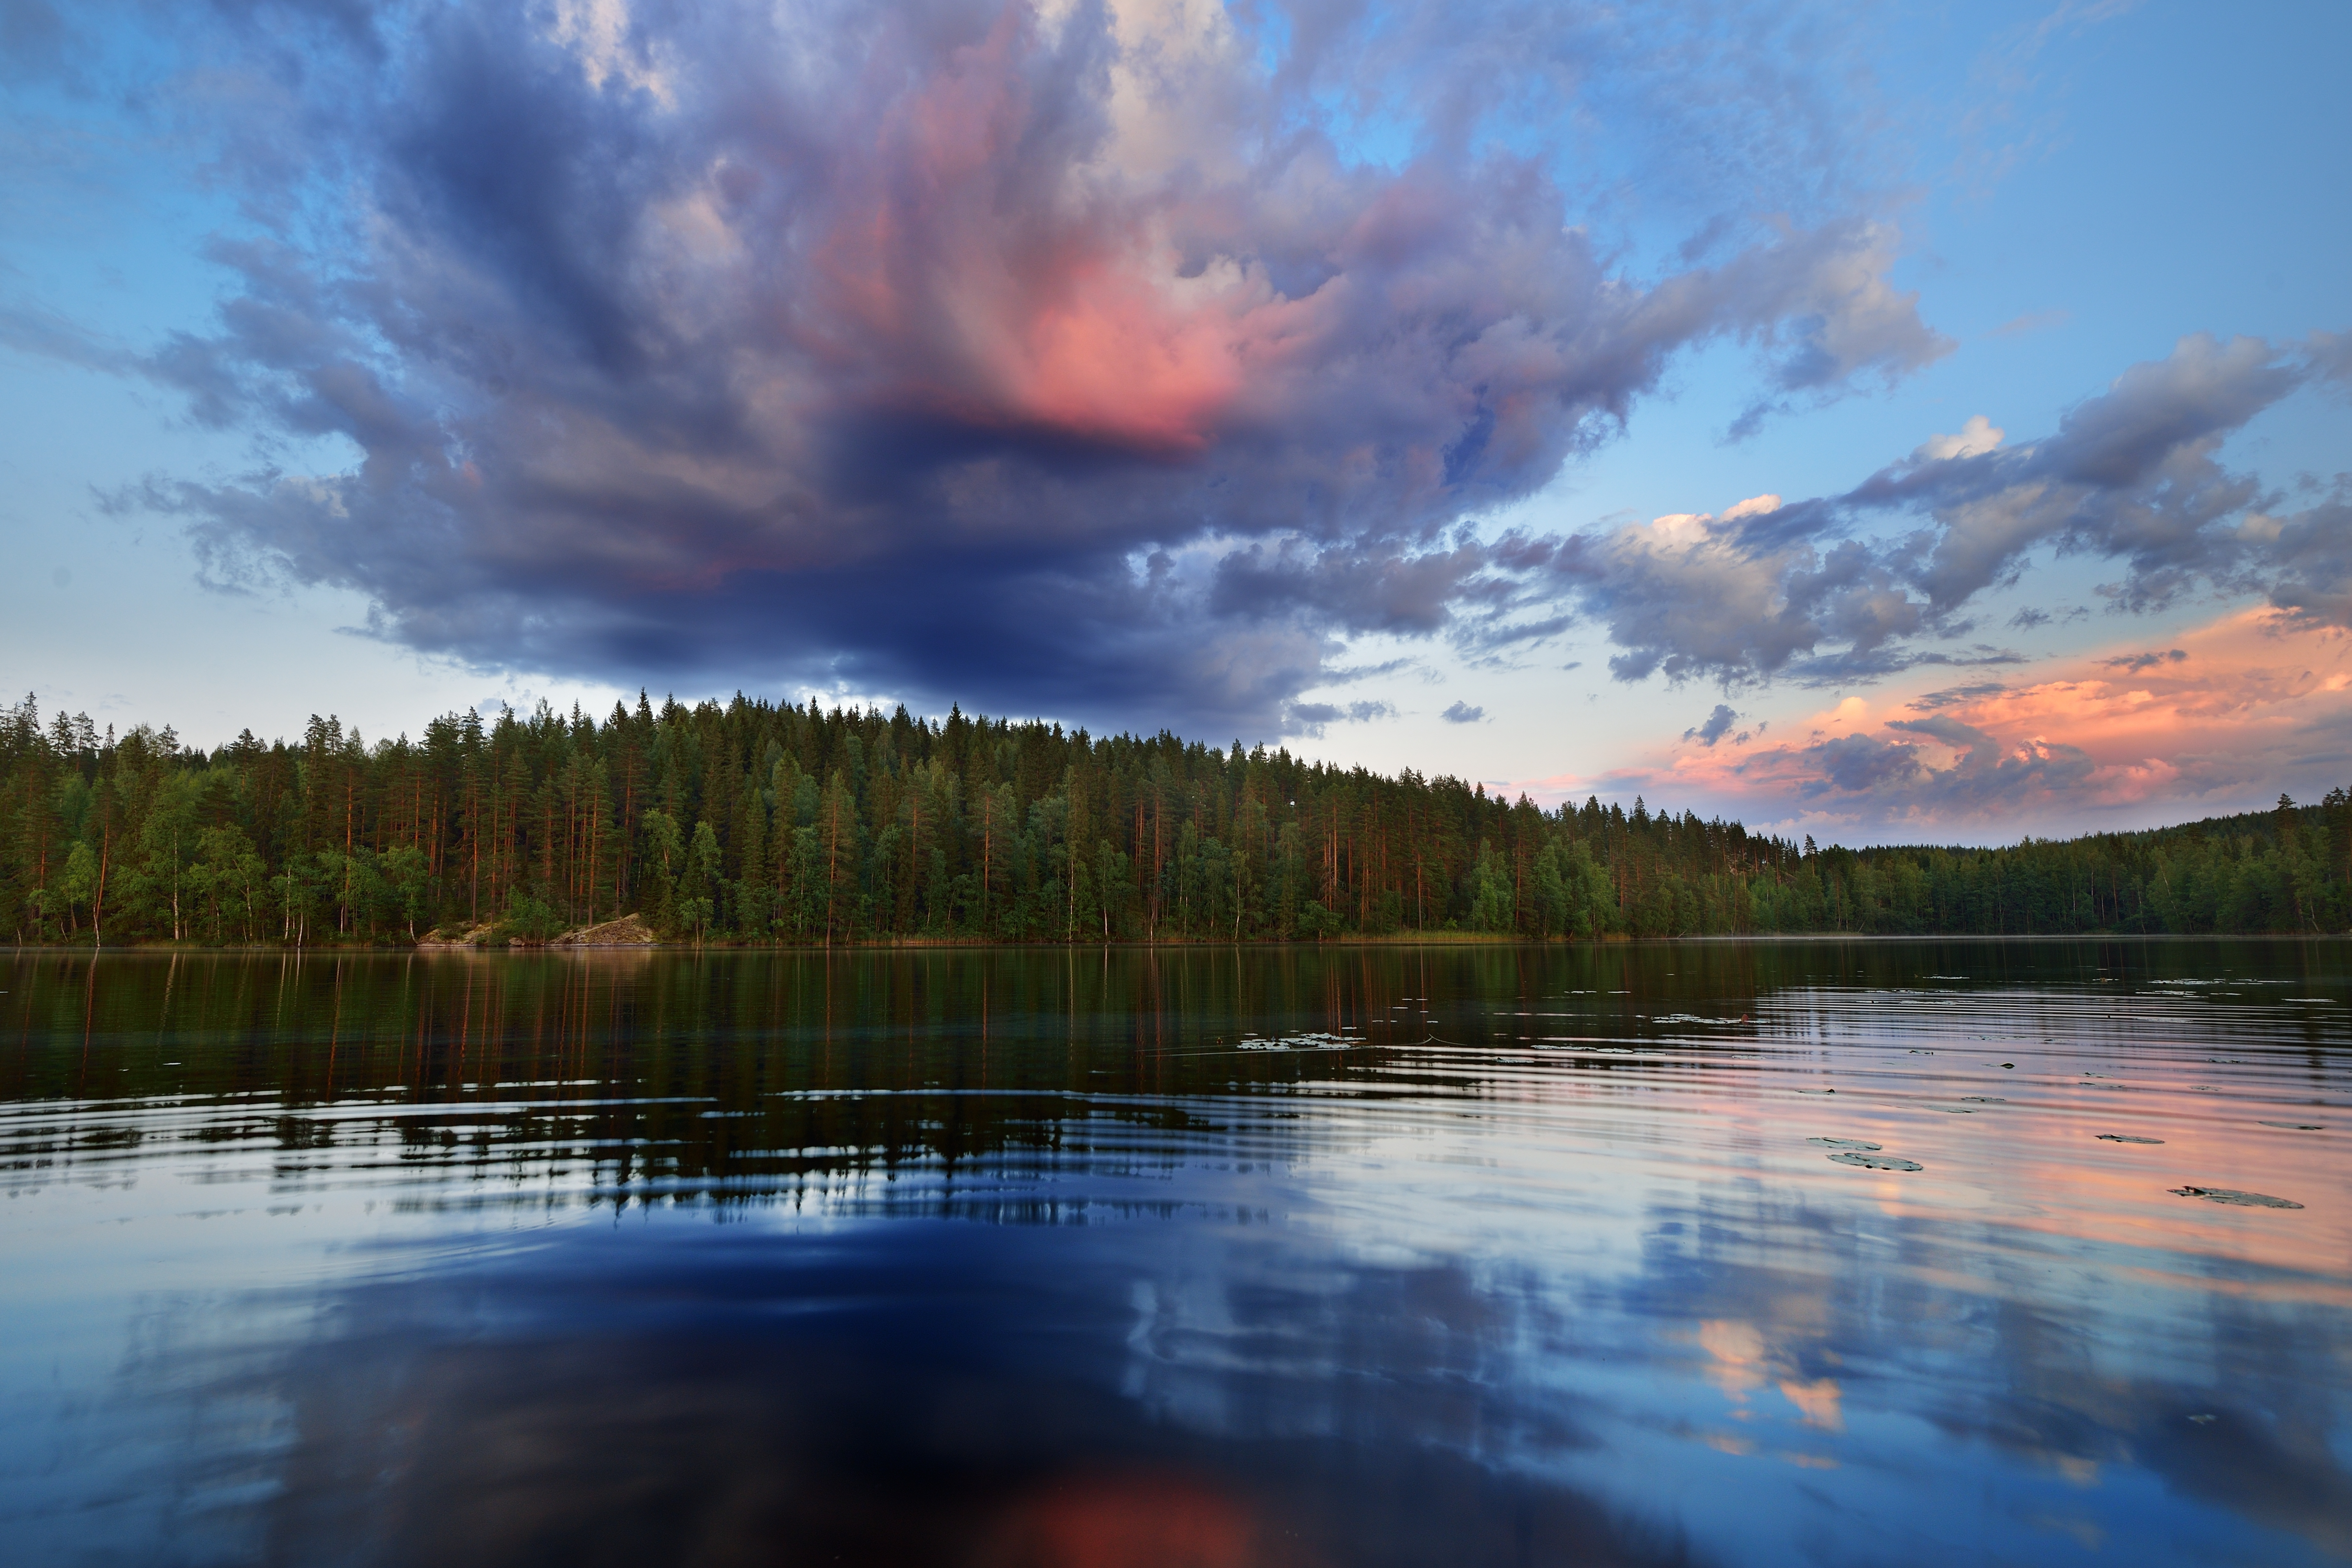 calm lake with forested shoreline and blue and pink clouds overhead